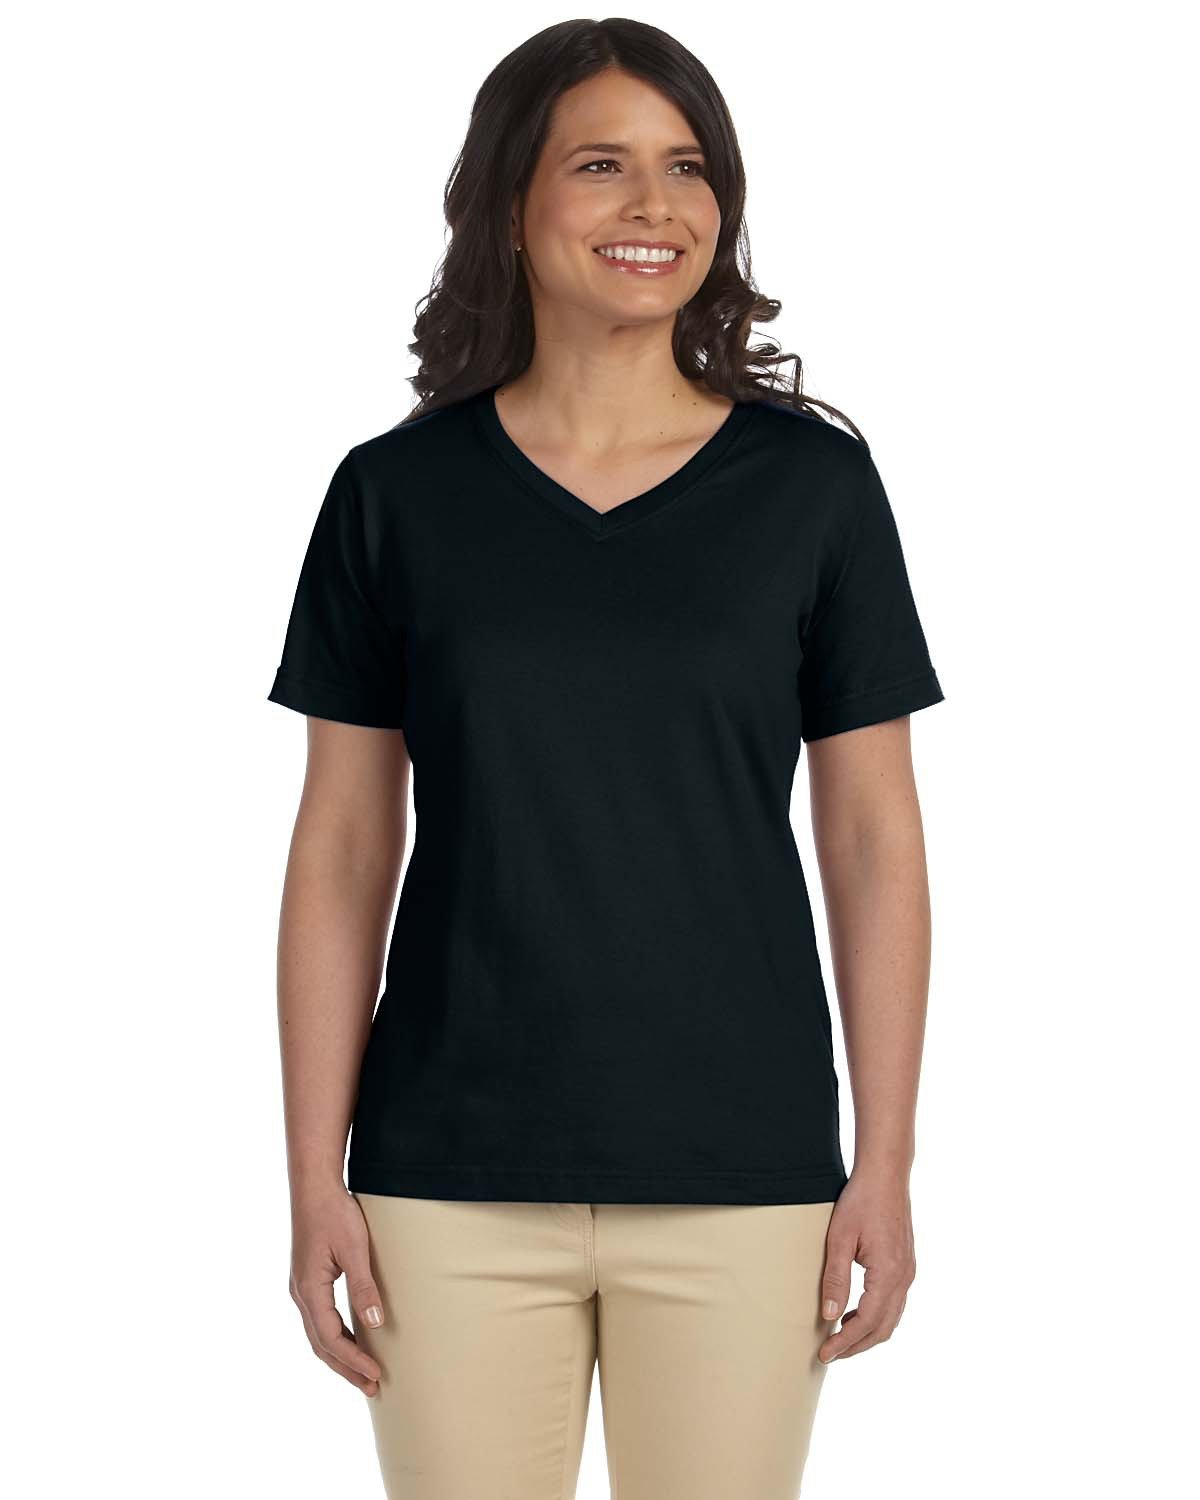 LAT Ladies' Premium Jersey V-Neck T-Shirt BLACK